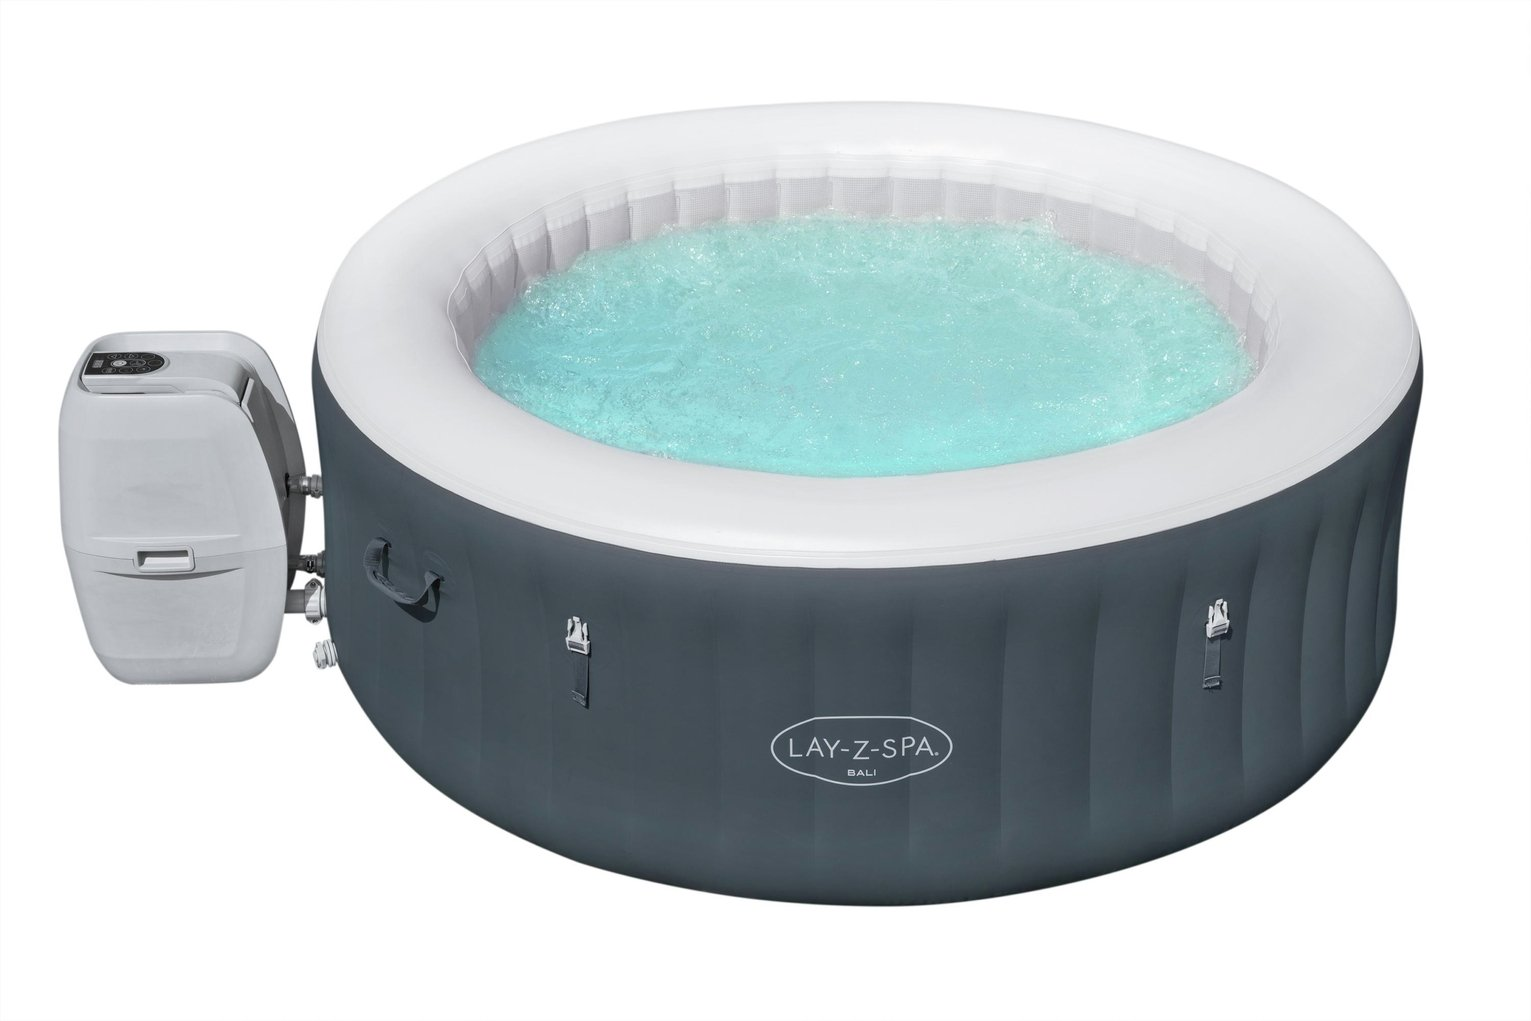 Lay Z Spa Bali 2-4 Person LED Hot Tub - Home Delivery Only